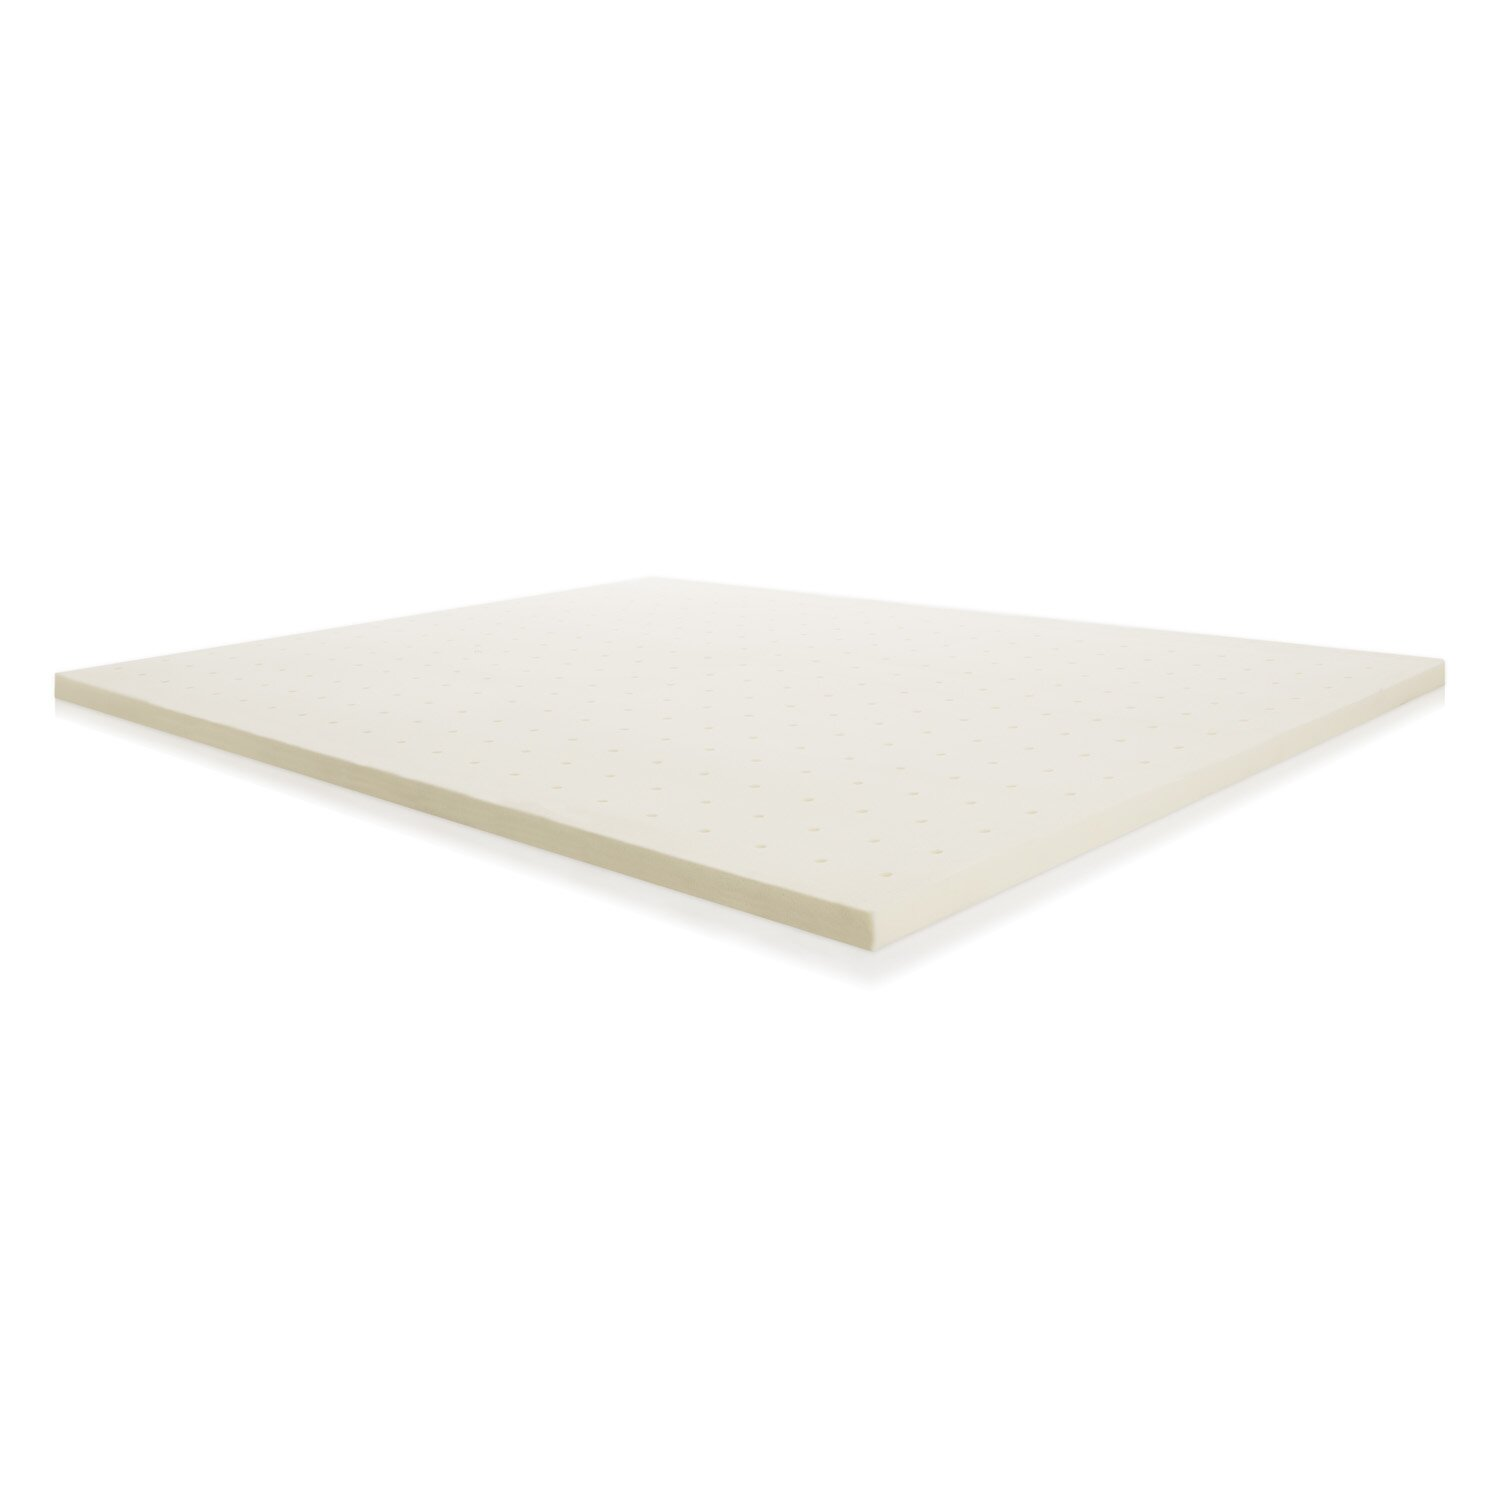 Lucid Memory Foam Mattress Topper Reviews